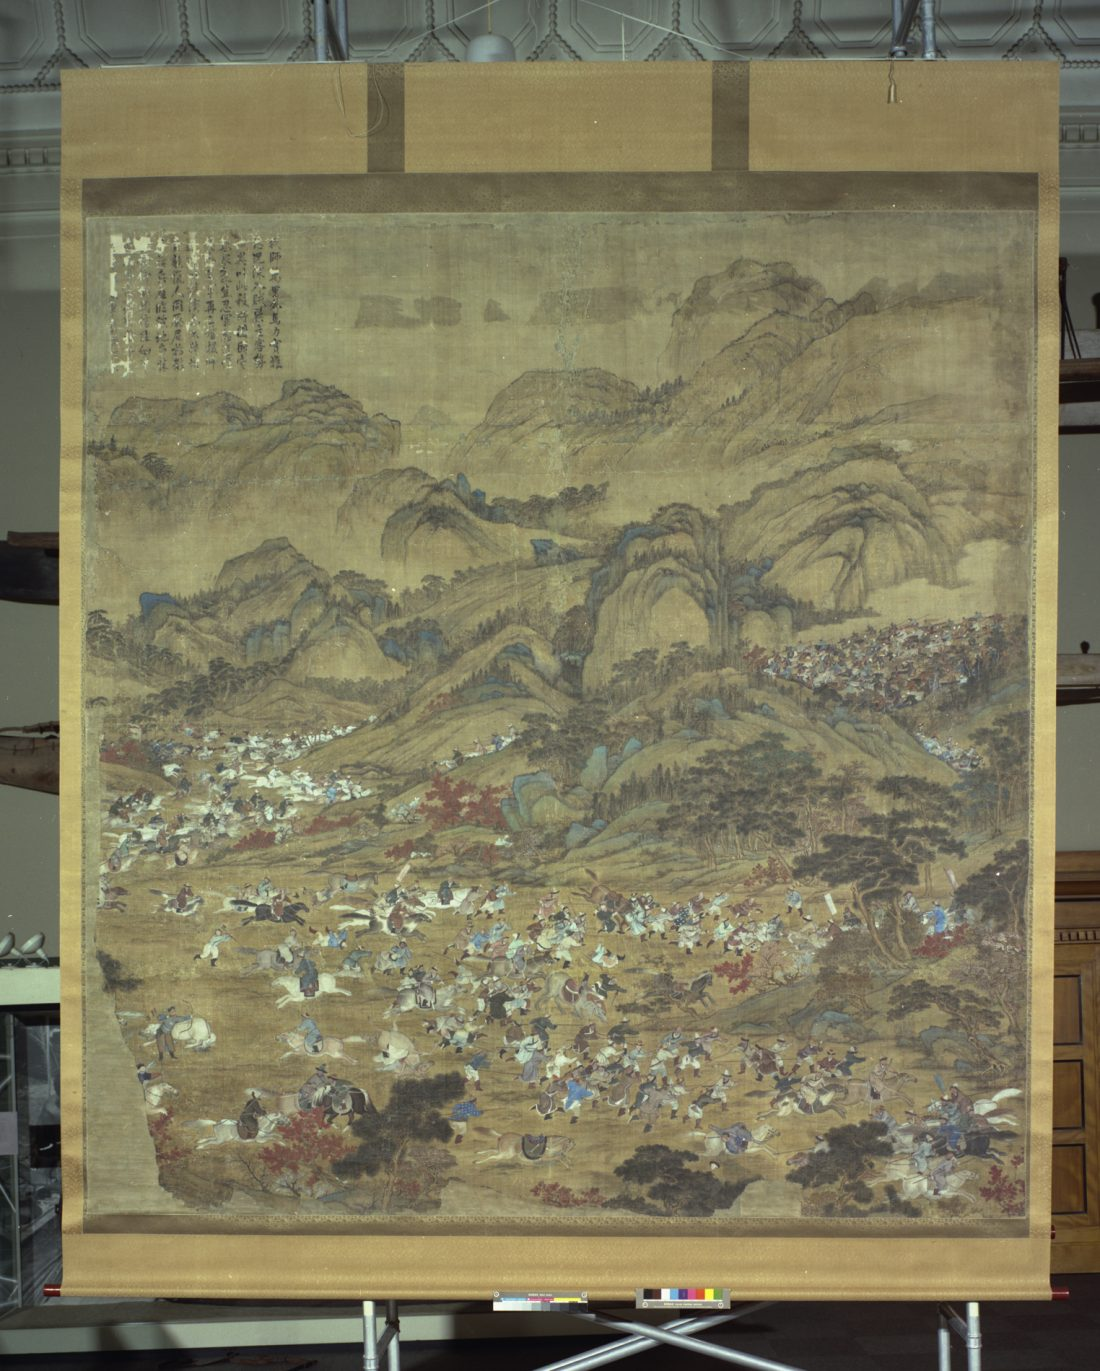 Depiction of a battle, painting